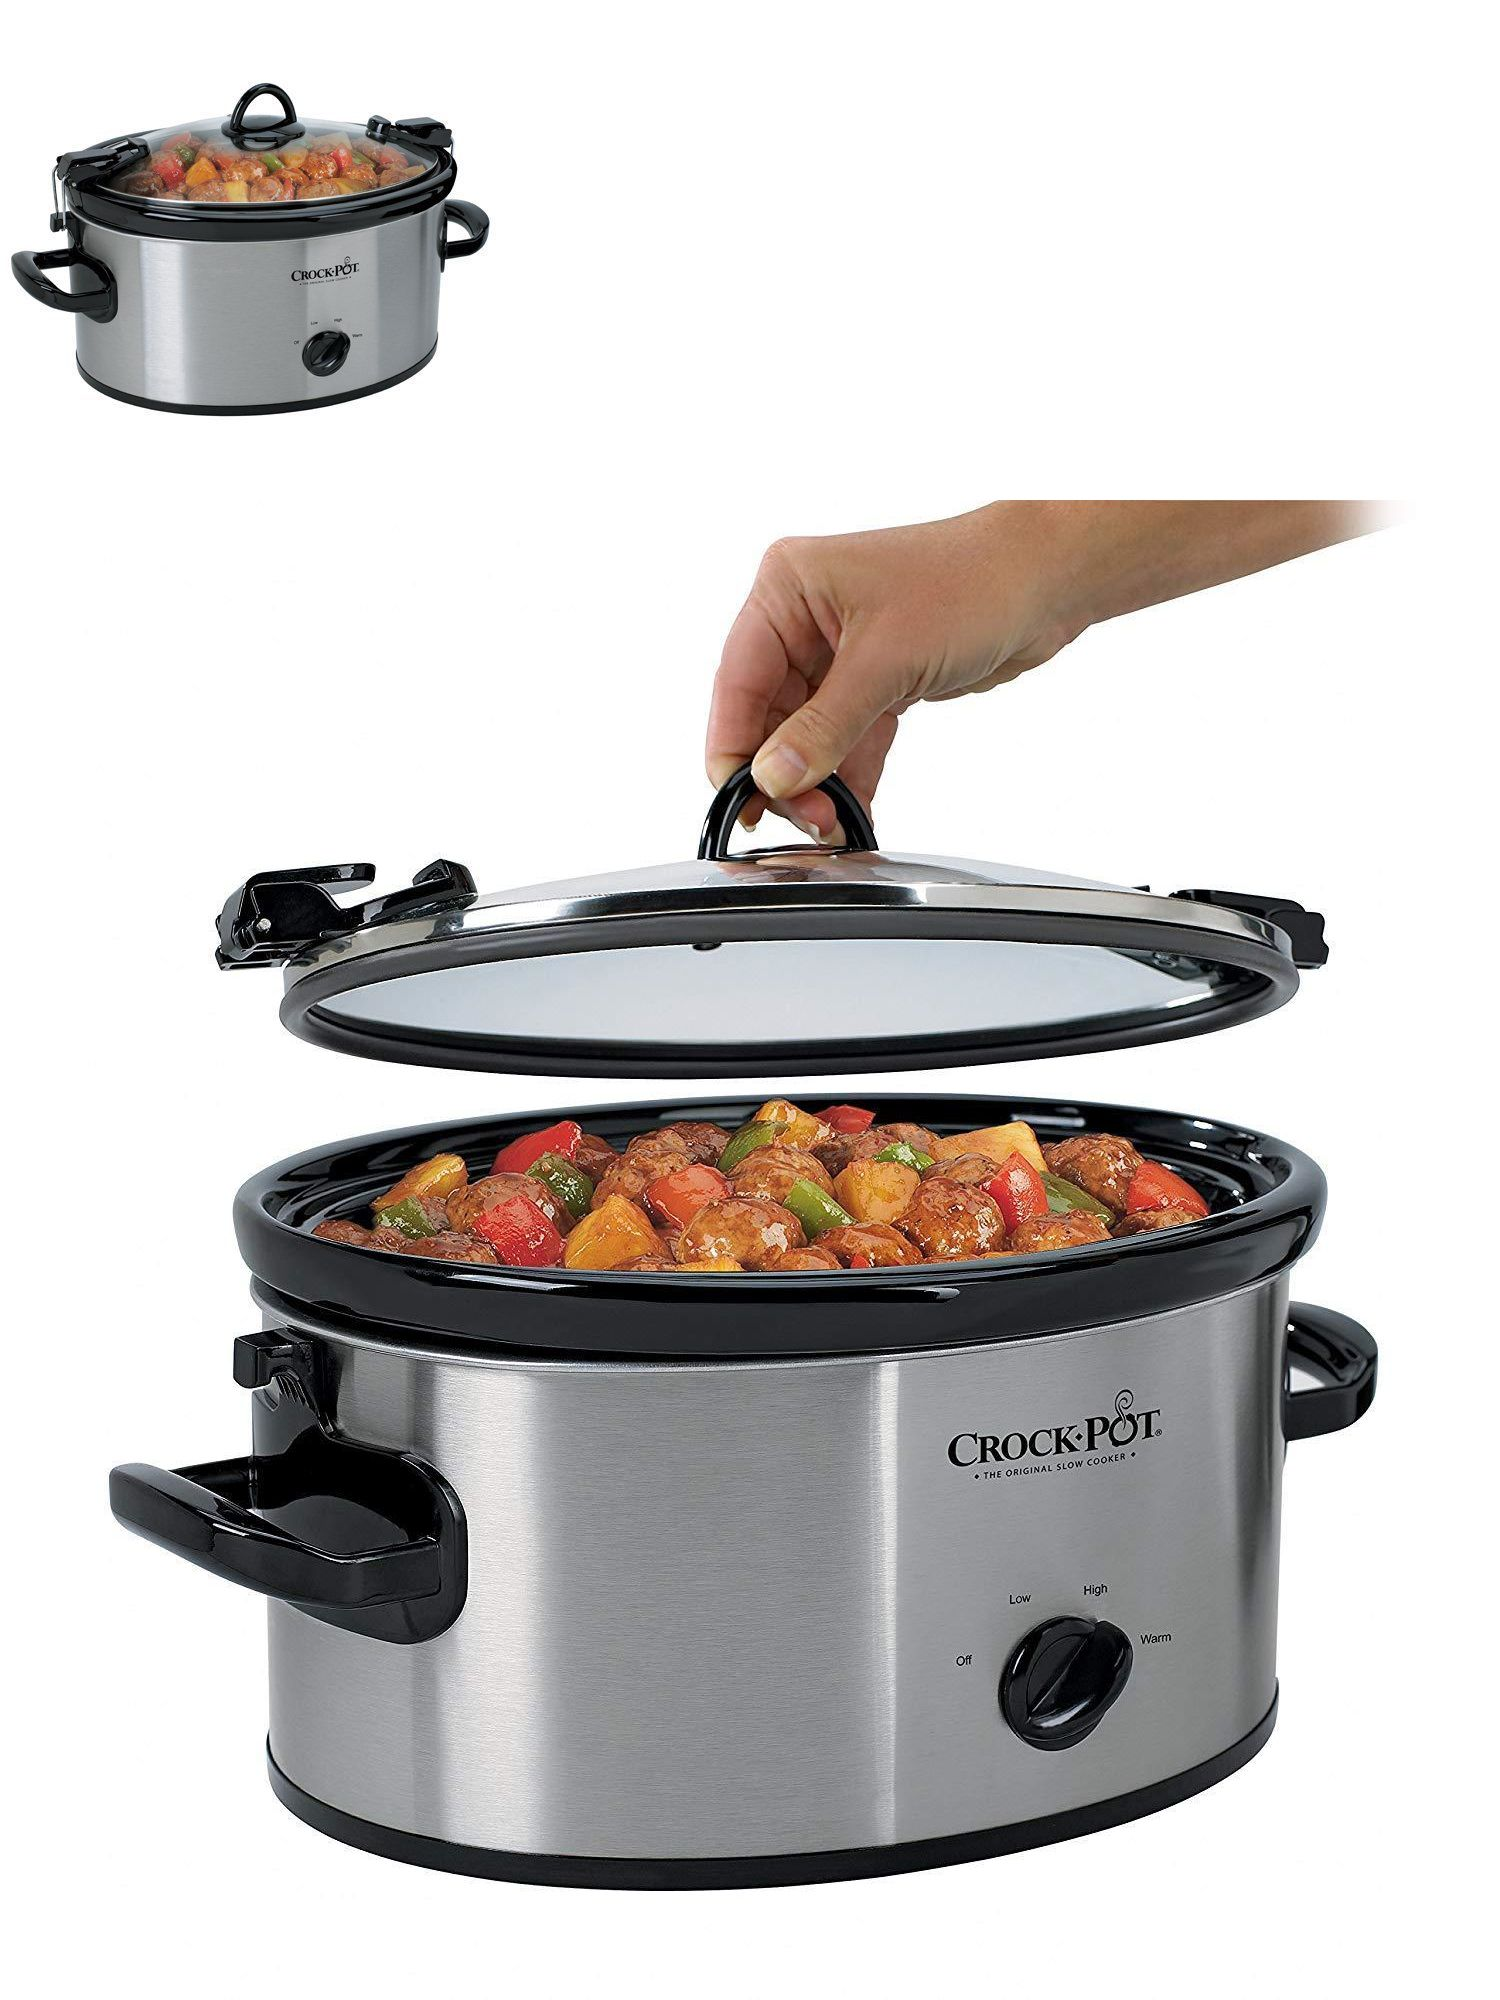 53089244734 Slow Cookers and Pressure Cookers 20672  Crock-Pot Sccpvl600s Cook N Carry 6 -Quart Oval Manual Portable Slow Cooker -  BUY IT NOW ONLY   23.49 on  eBay  ...